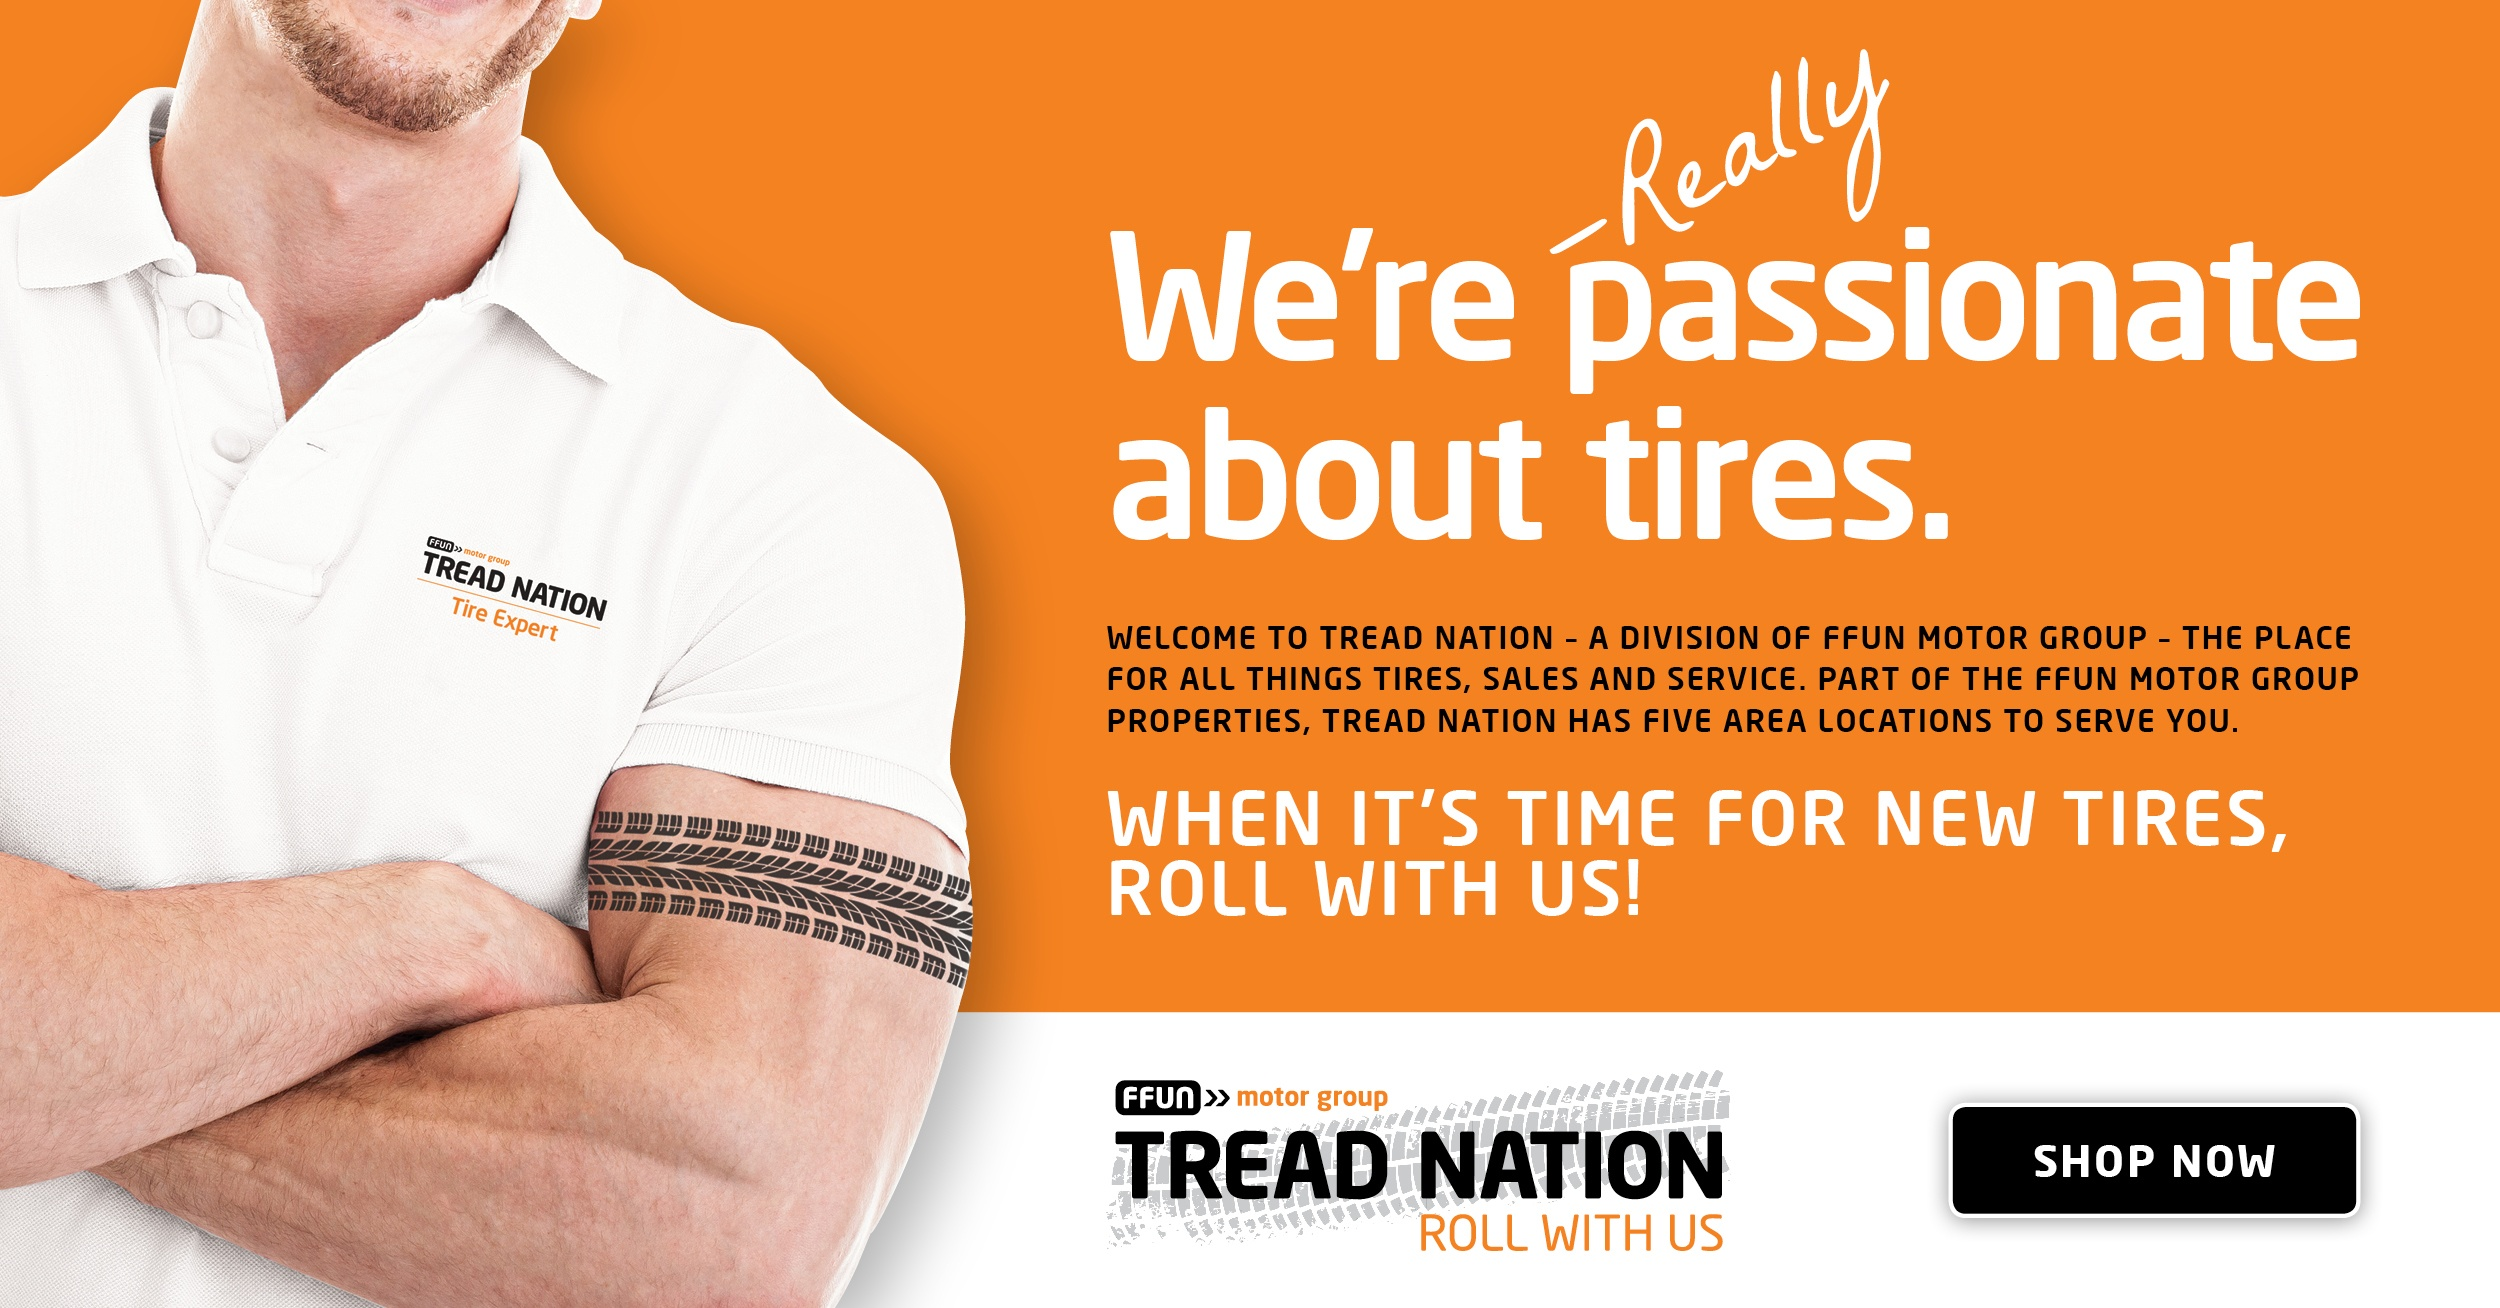 Tread Nation